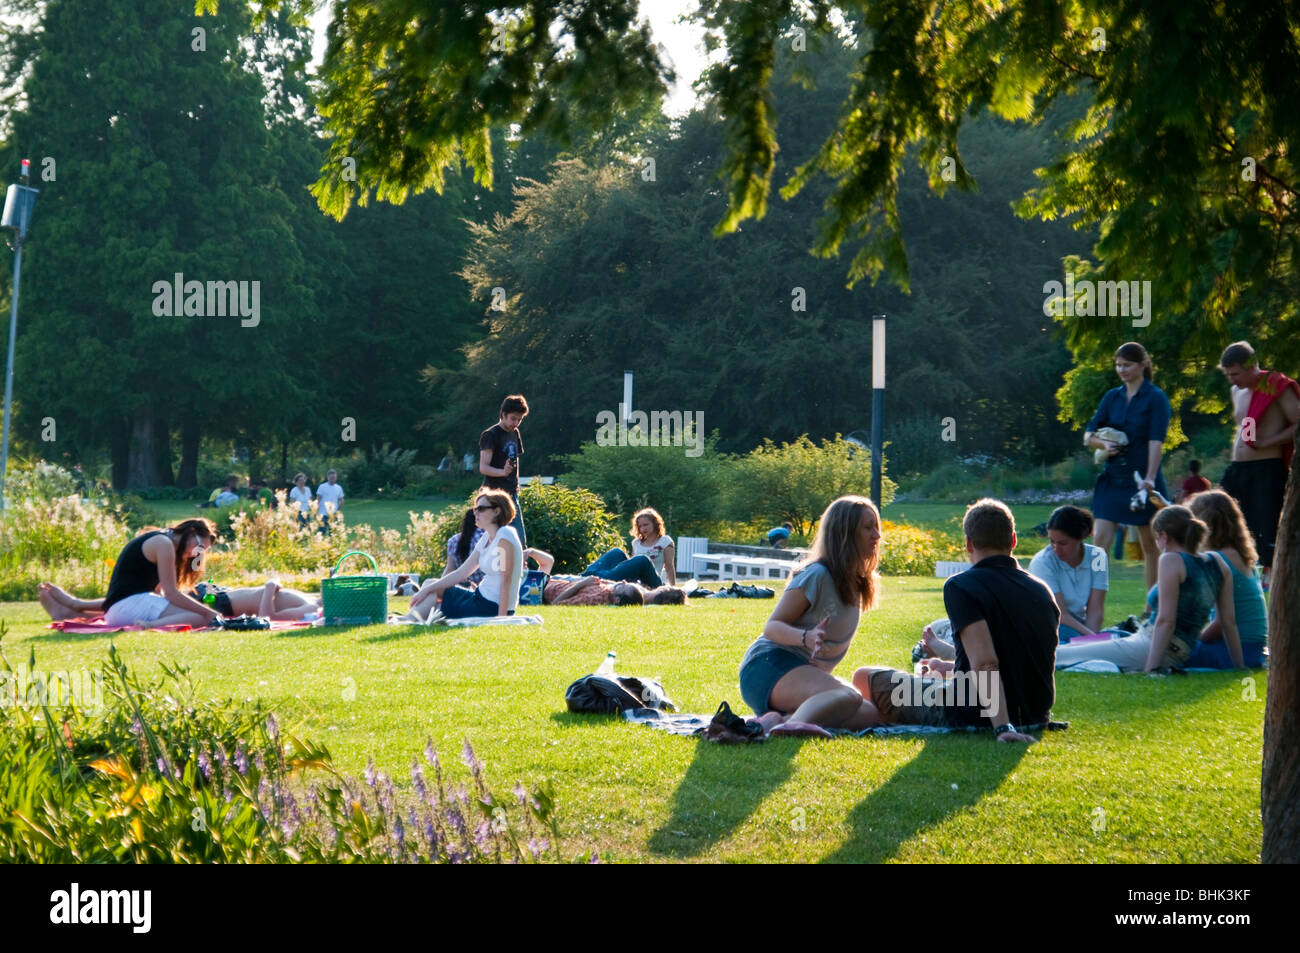 menschen auf wiese im park planten un blomen hamburg deutschland stock photo 28079507 alamy. Black Bedroom Furniture Sets. Home Design Ideas